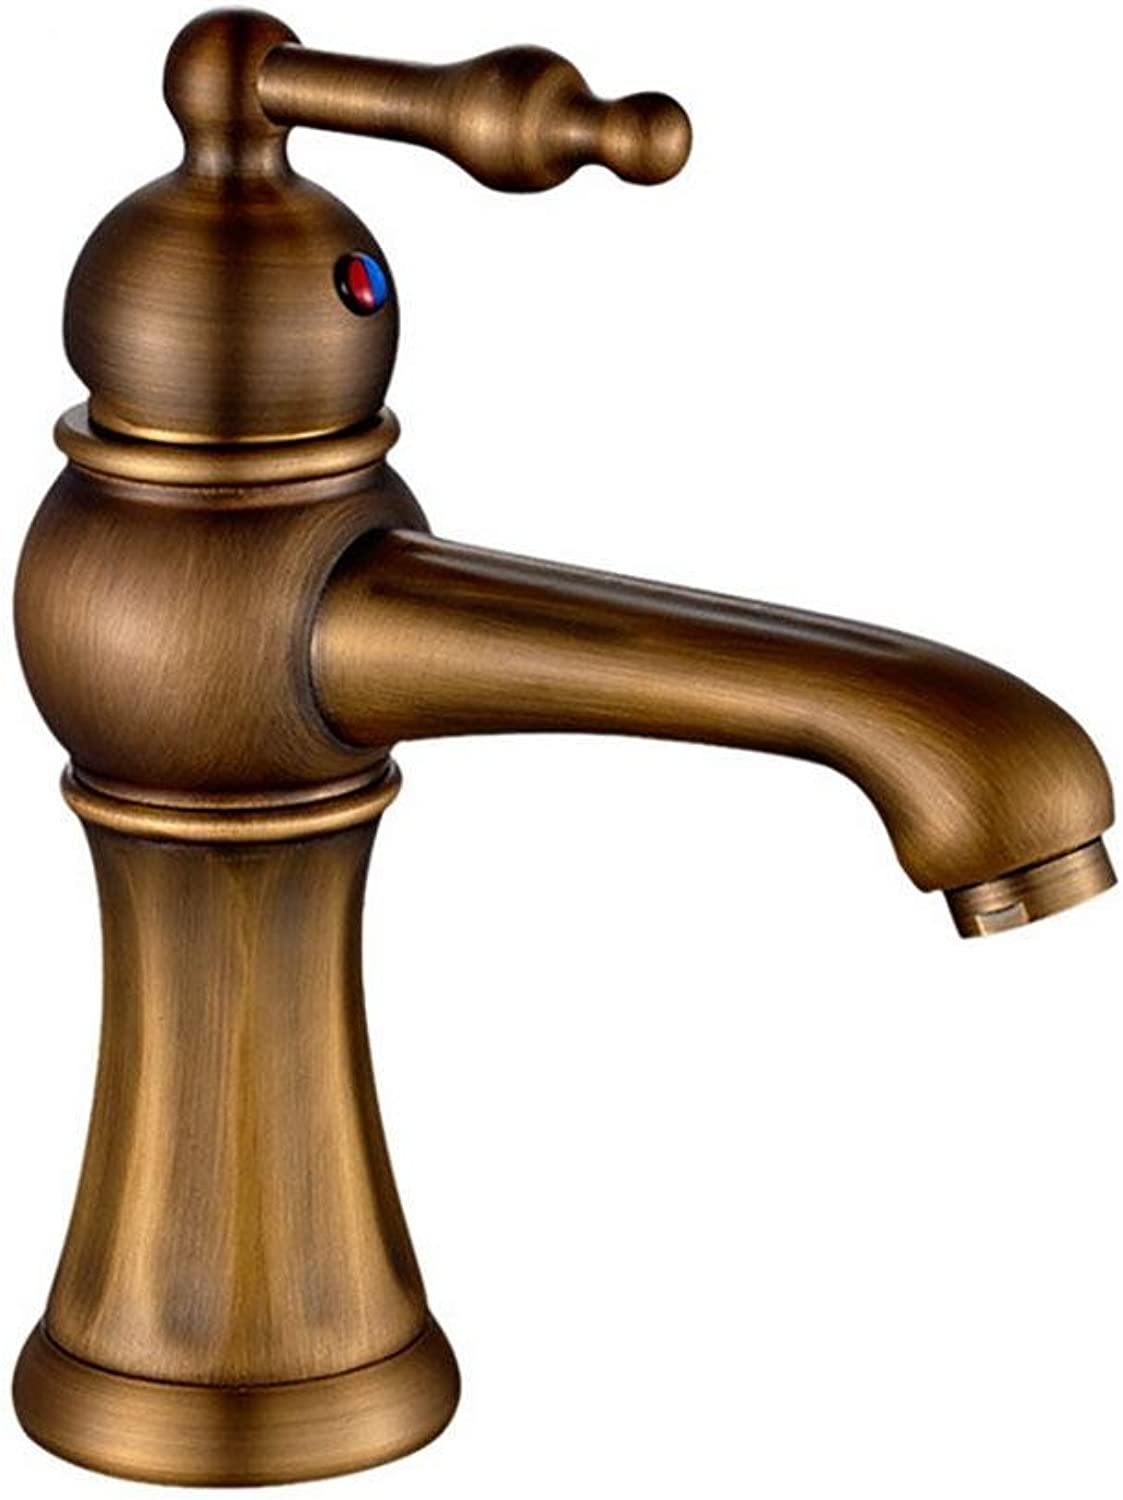 Shuilongtou QW Kitchen faucet Bathroom Basin Mixer Tap Single Handle Antique Brass